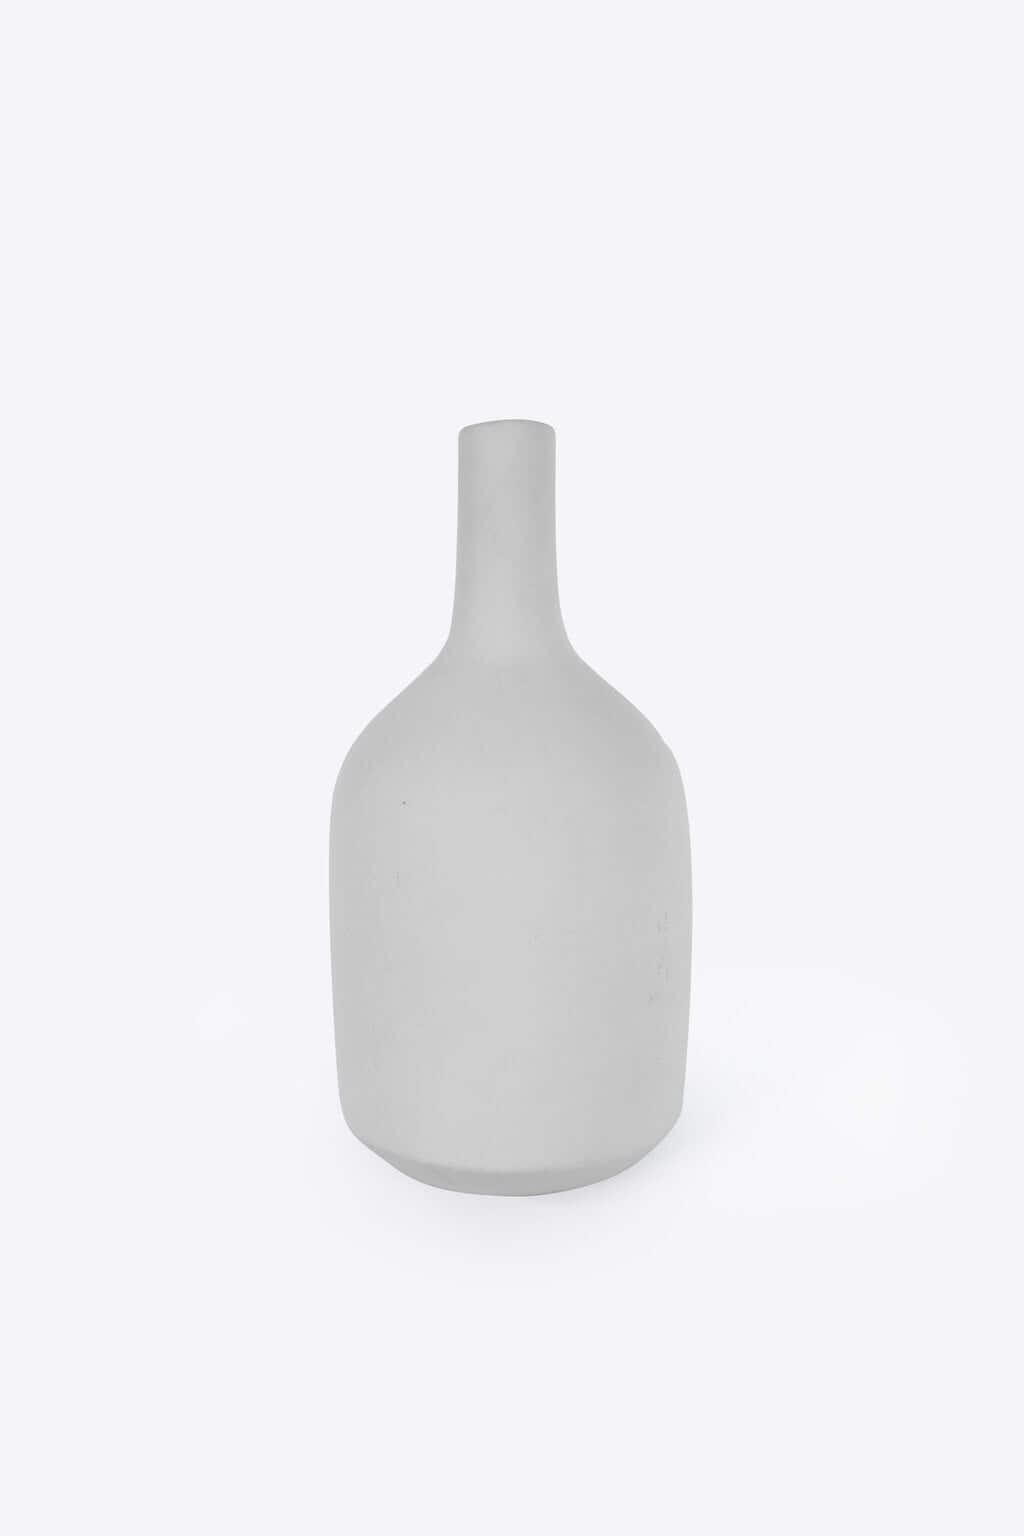 Bottle Vase 3130 Gray 5